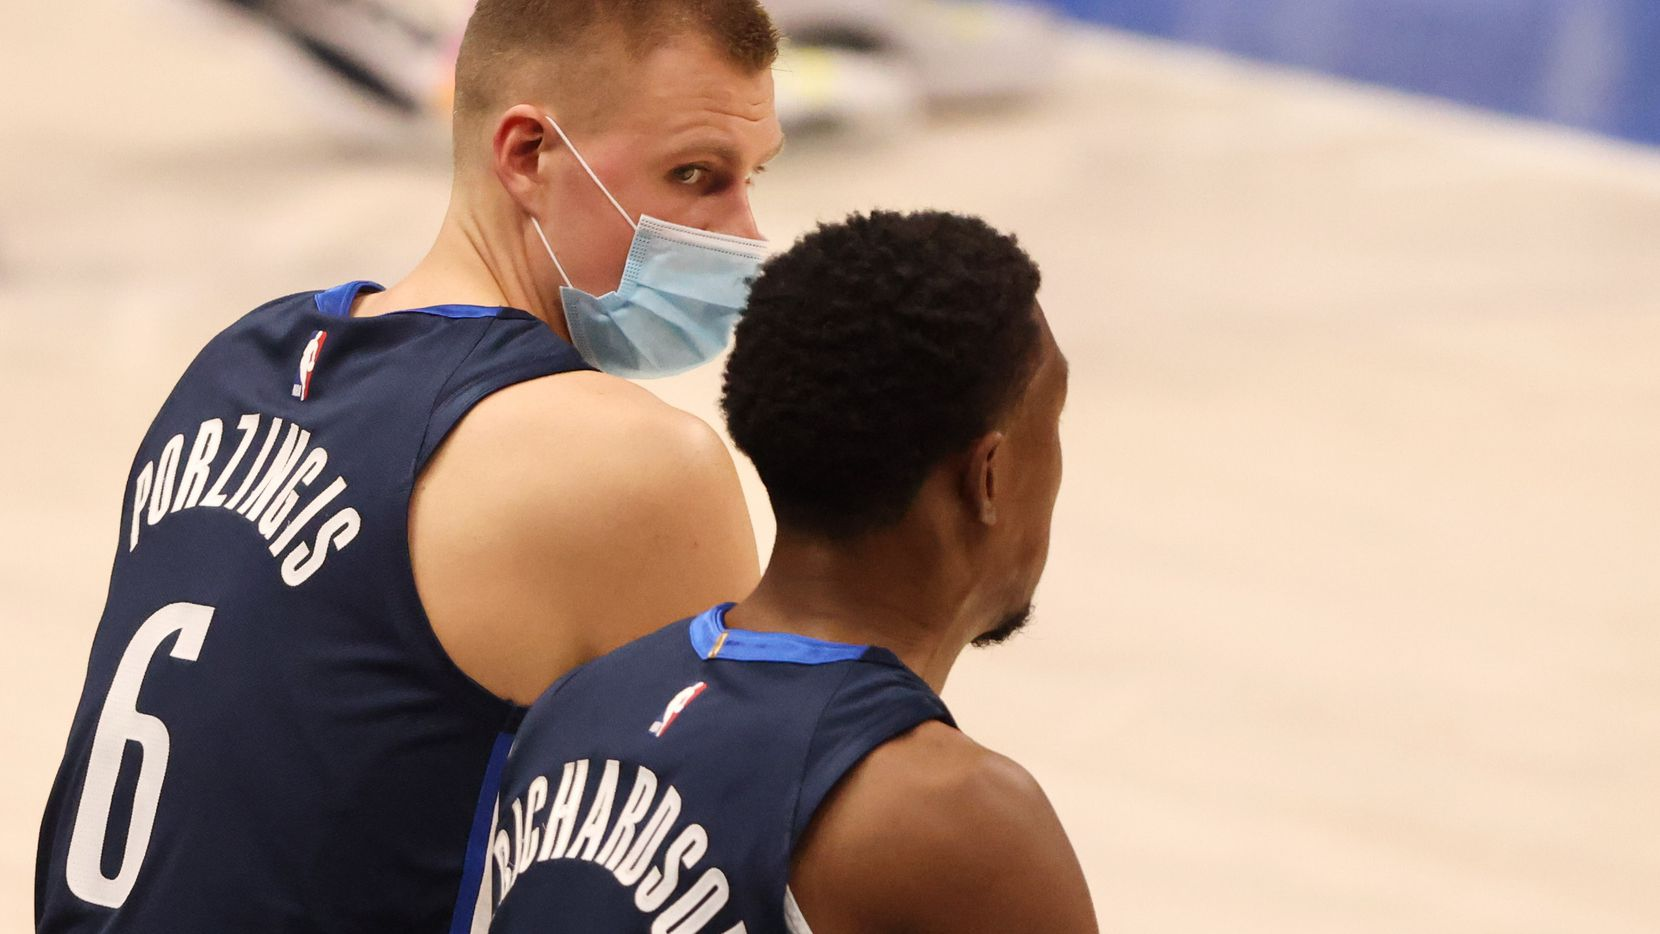 Dallas Mavericks forward Kristaps Porzingis (6) talks with Dallas Mavericks guard Josh Richardson (0) in a game against the Phoenix Suns during the second quarter of play at American Airlines Center on Monday, February 1, 2021in Dallas.